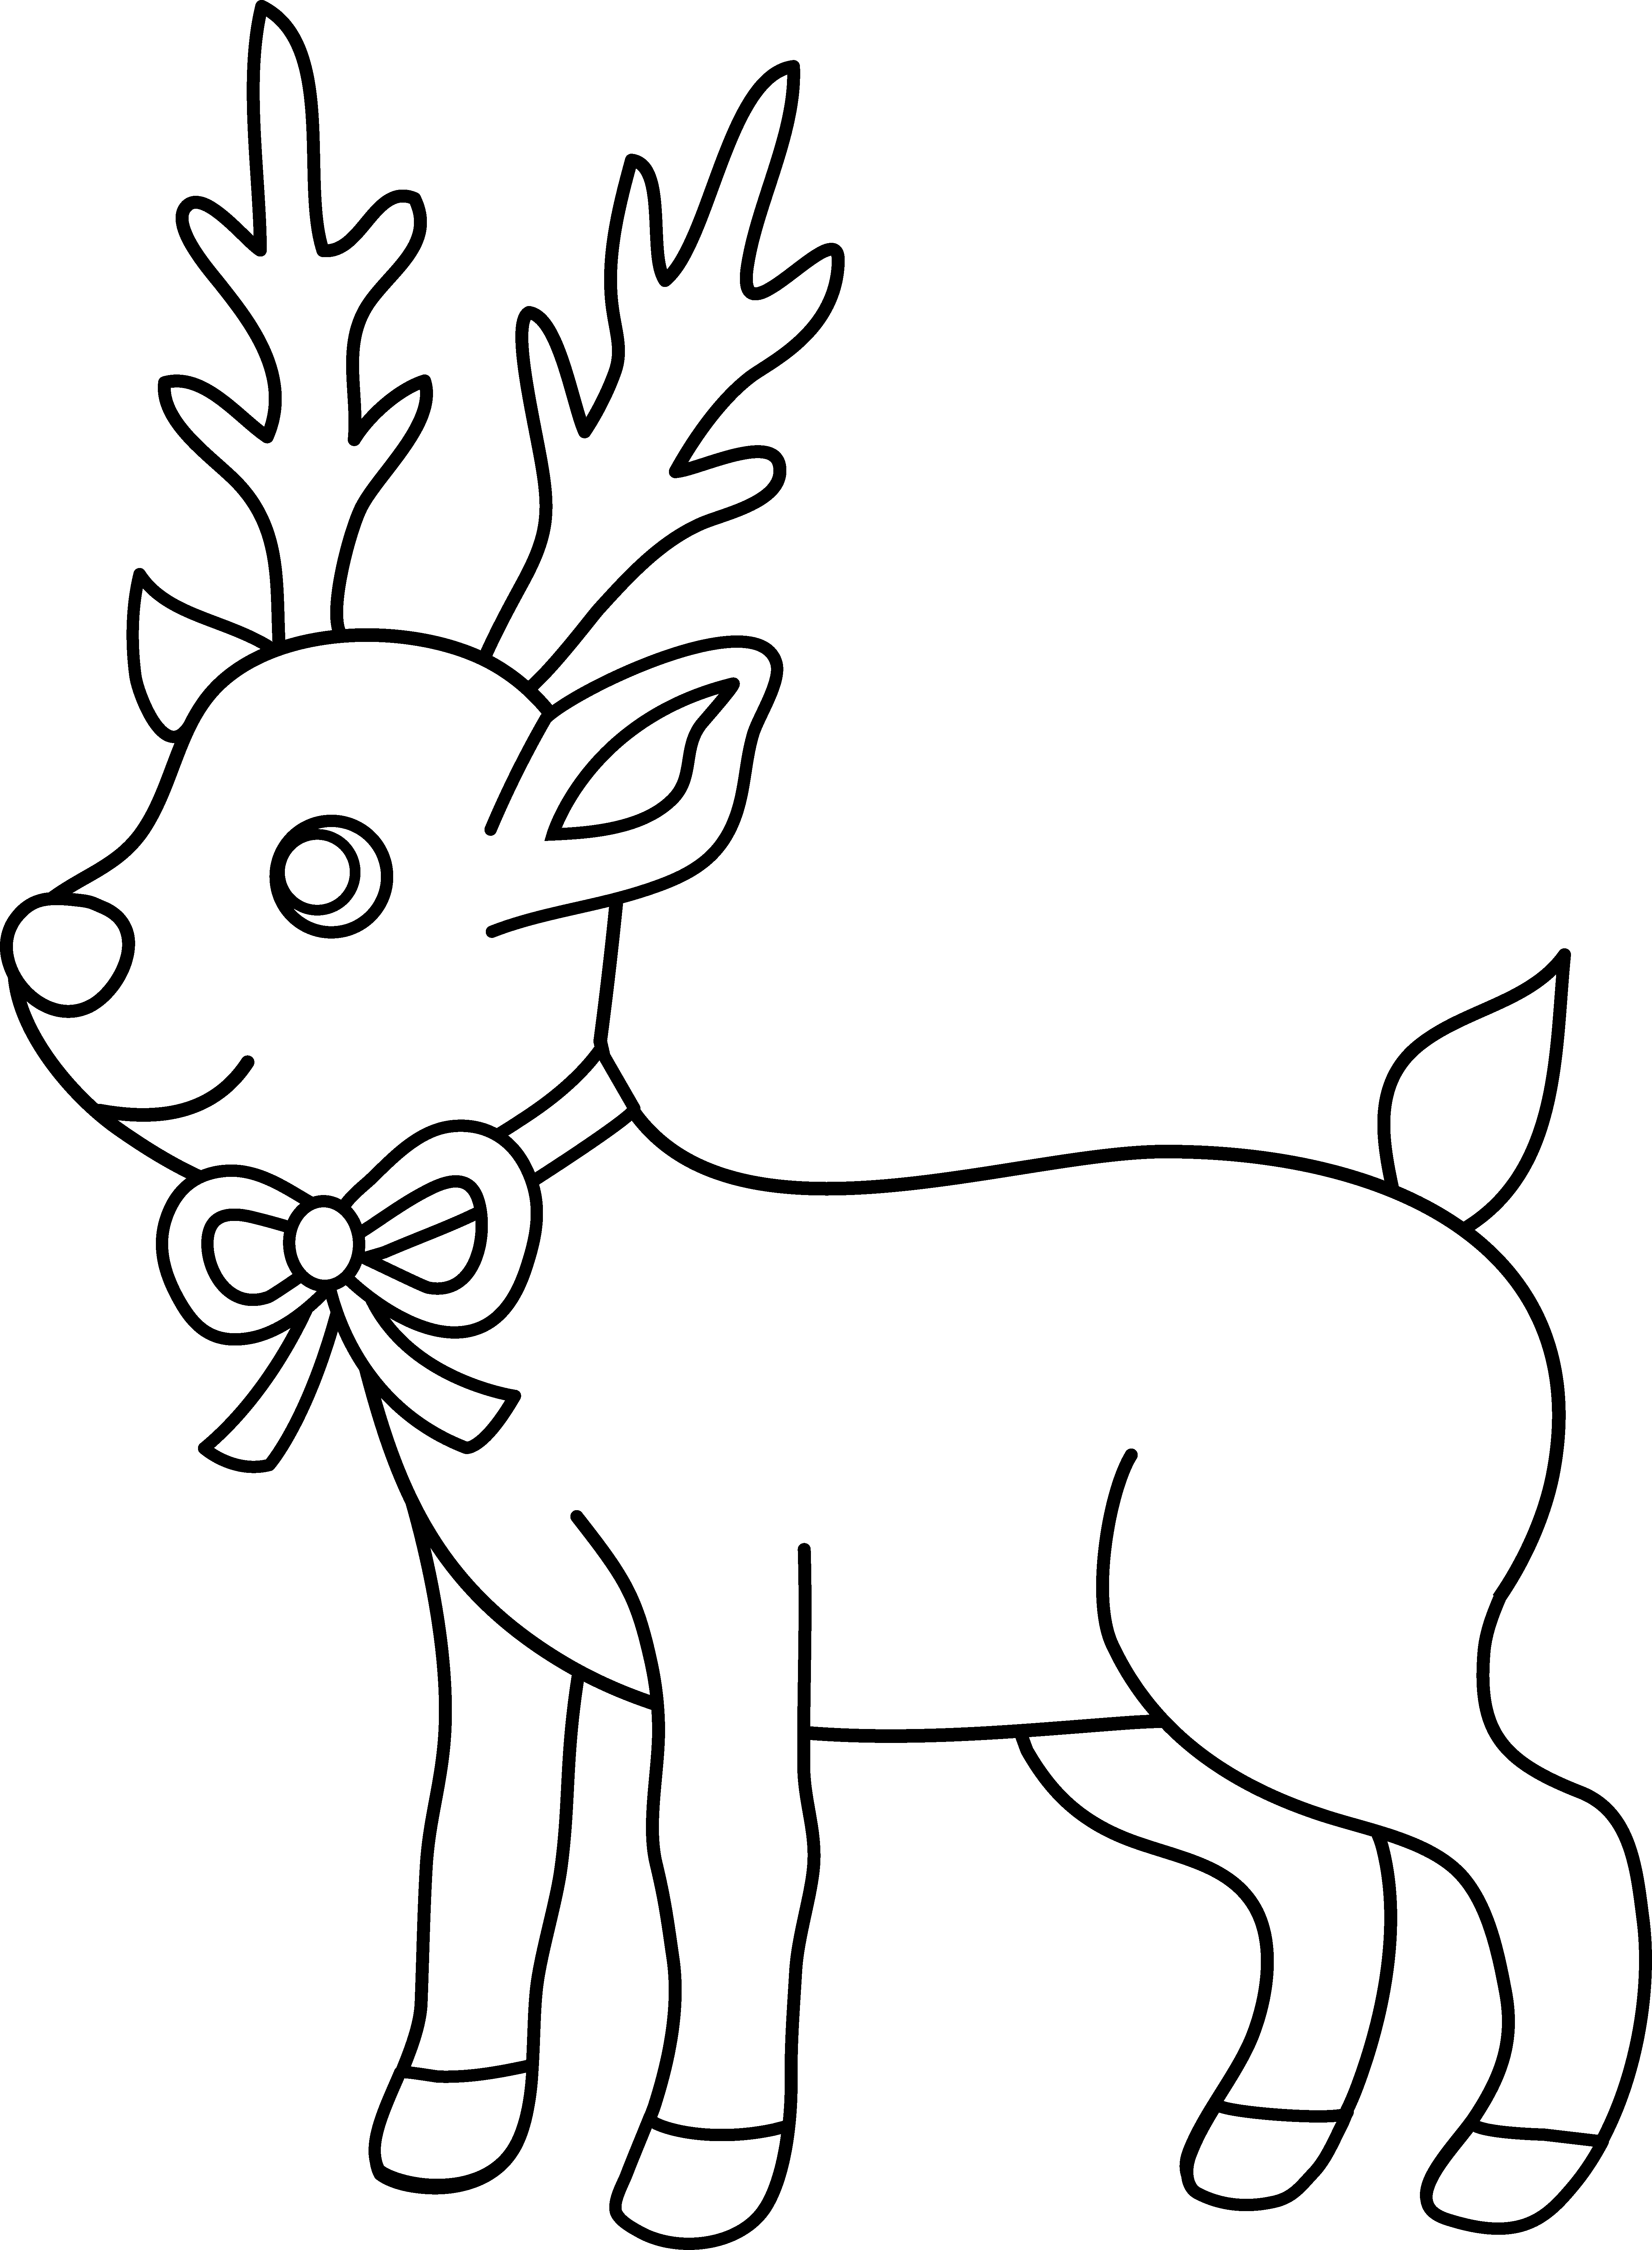 Download Christmas Reindeer Coloring Page - Christmas ...